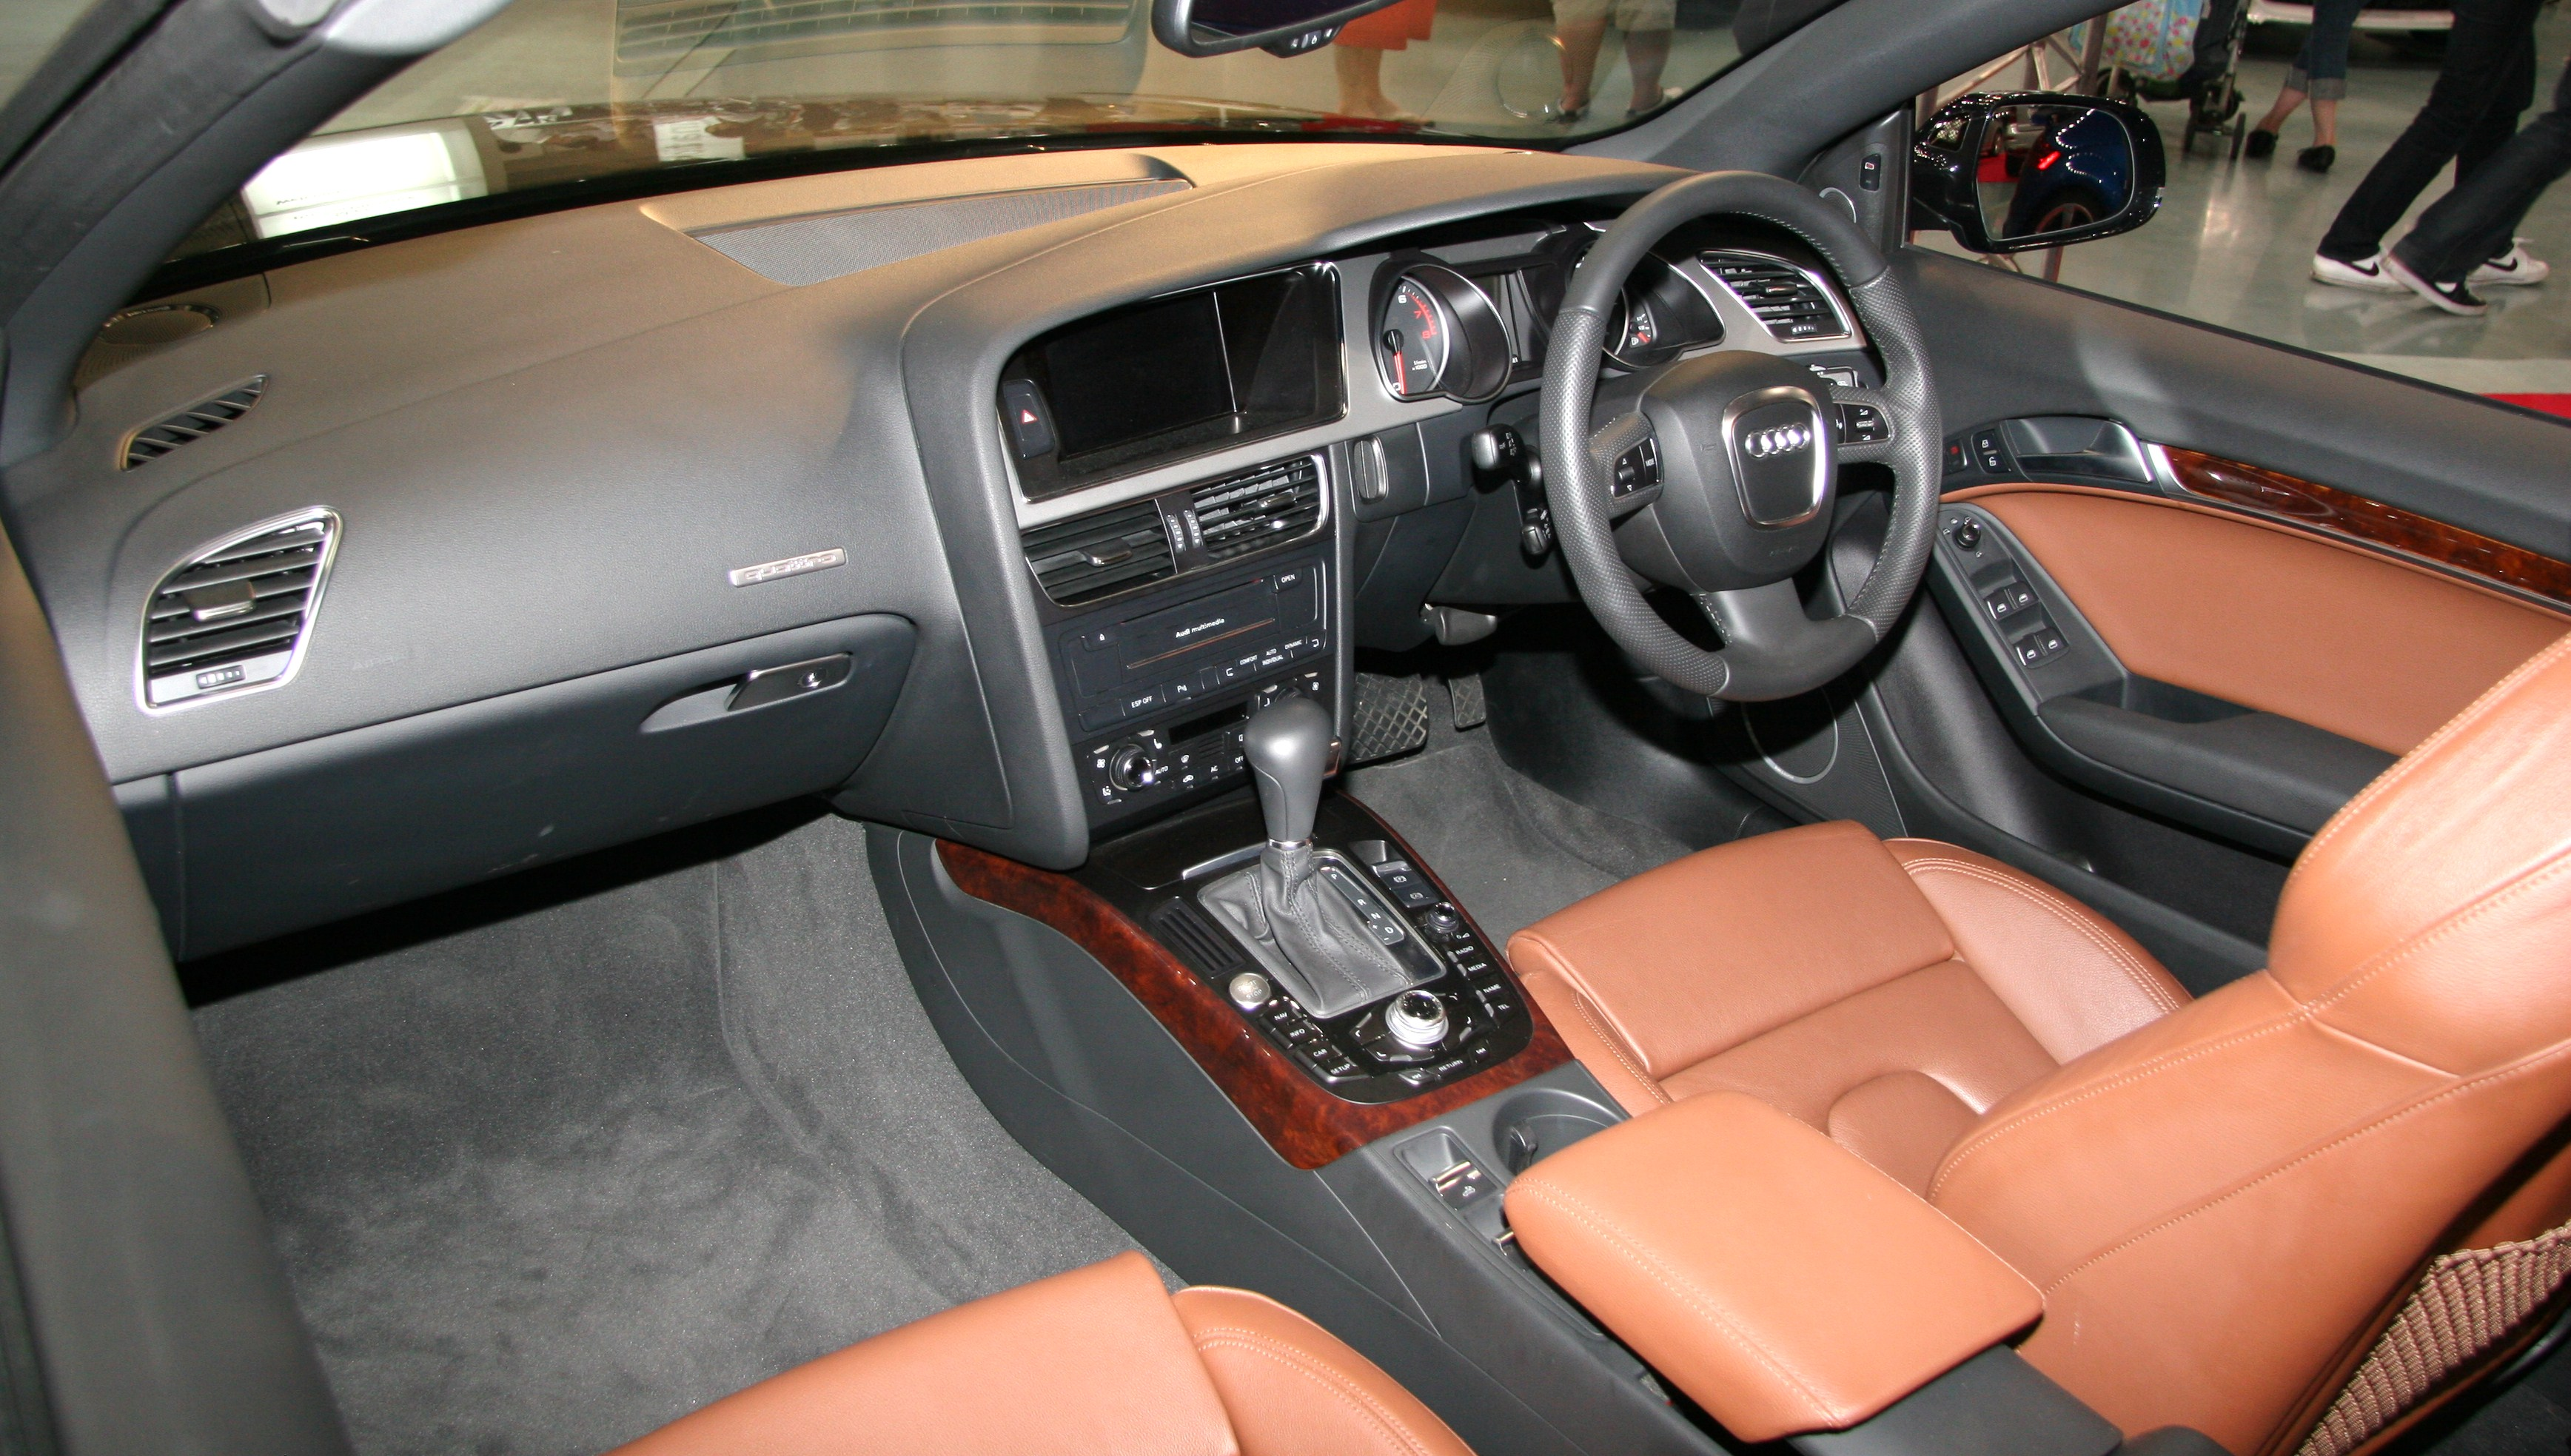 File Audi A5 Cabriolet Interior Jpg Wikimedia Commons